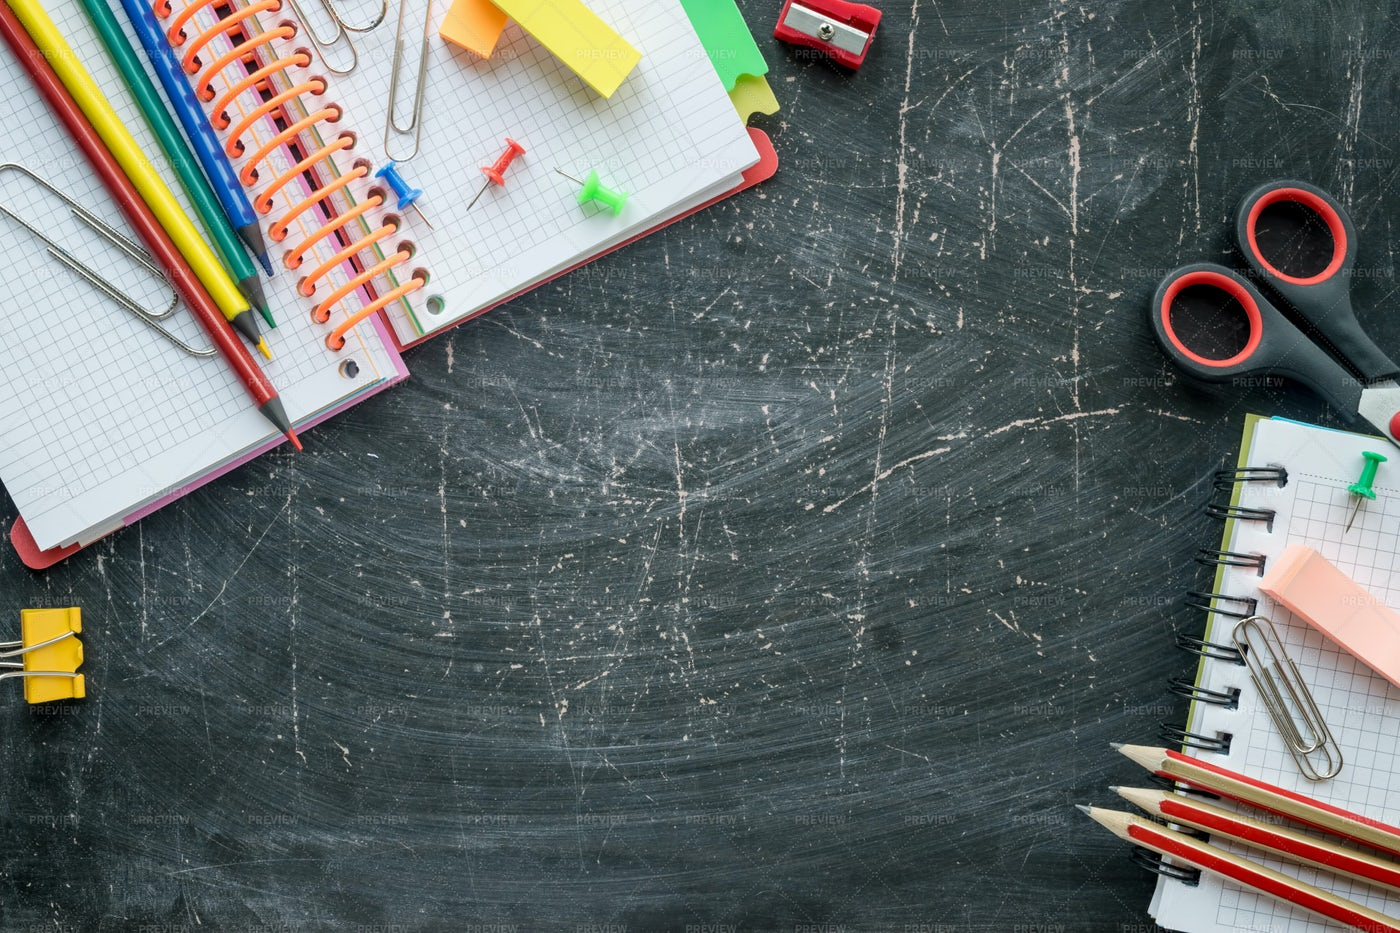 Stationery On A Chalkboard: Stock Photos